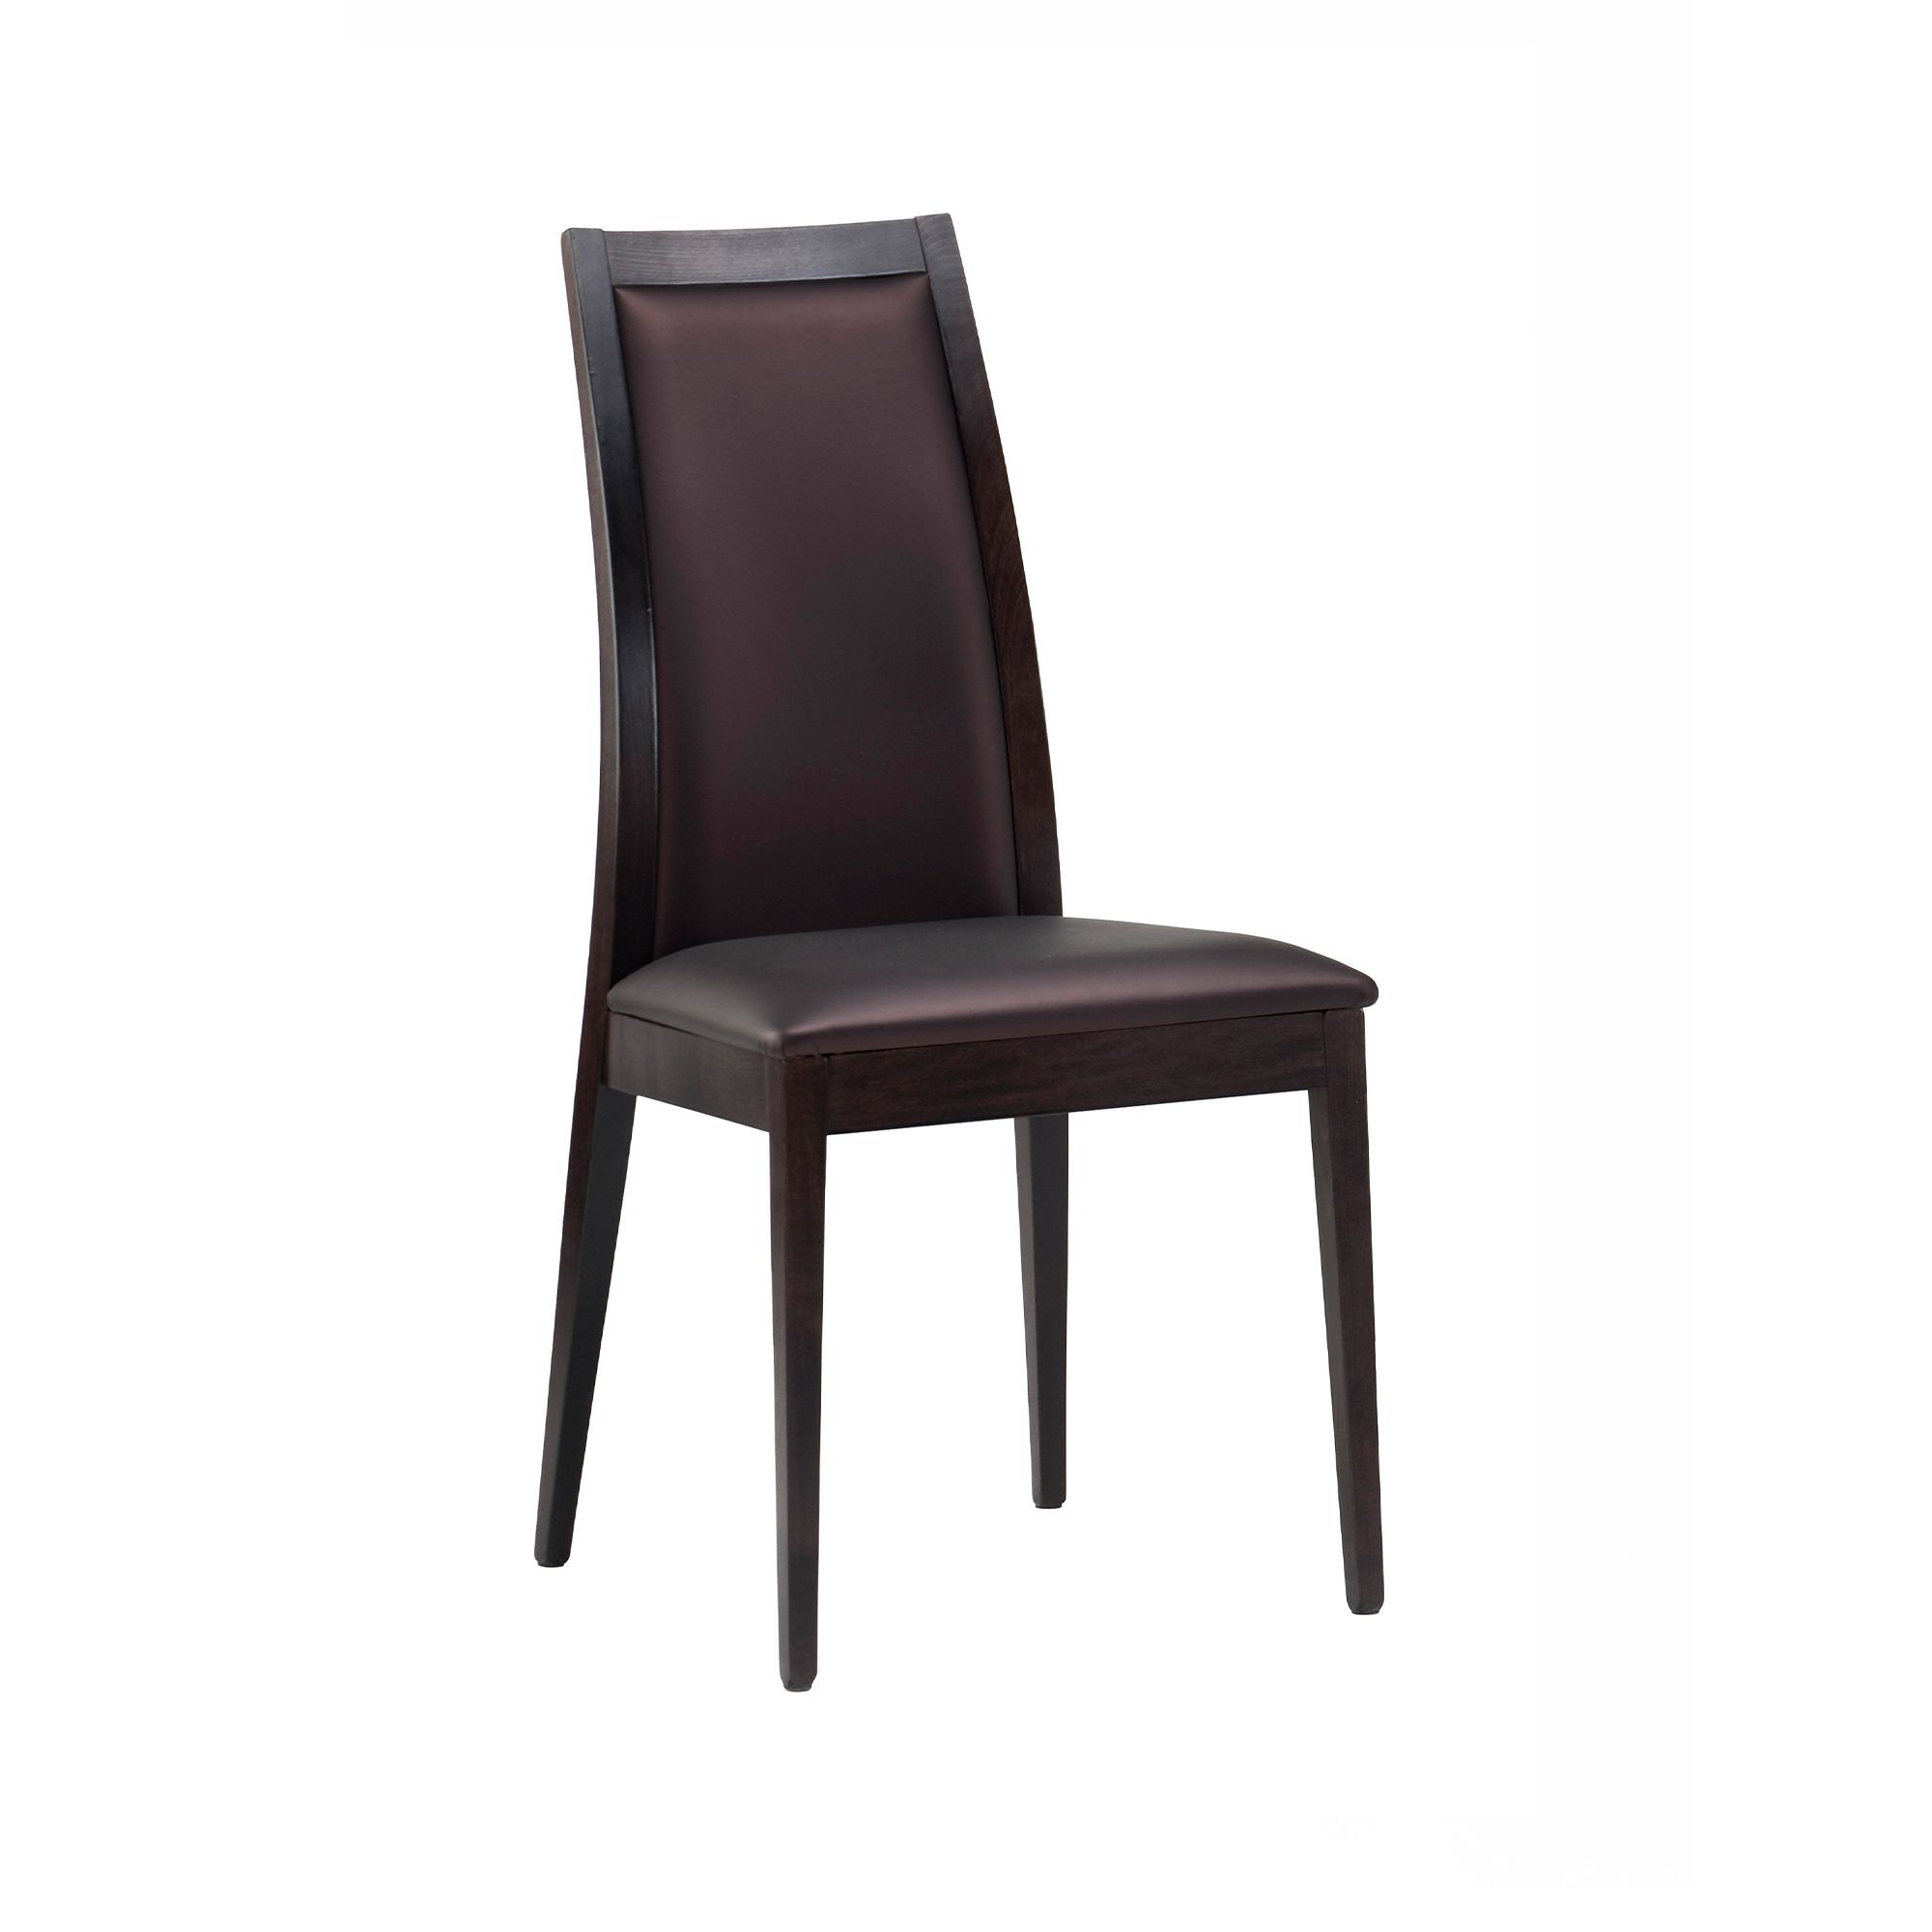 Model 912 chair in classic style